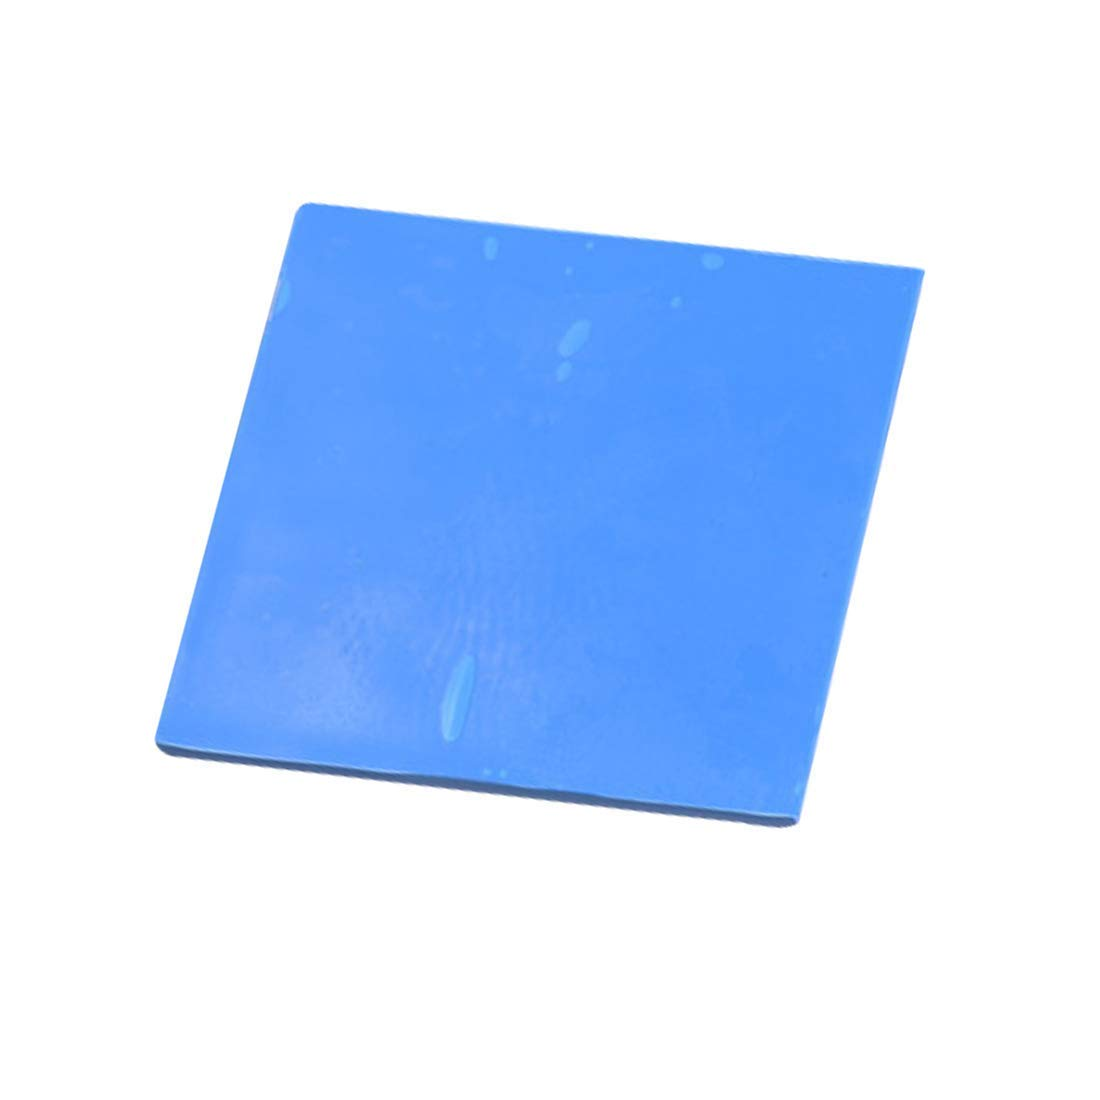 Yevison GPU CPU Heatsink Cooler Conductive Silicone Pad 100mm 0.5mm Thermal Pad Spare Parts for Cooling High Quality by Yevison